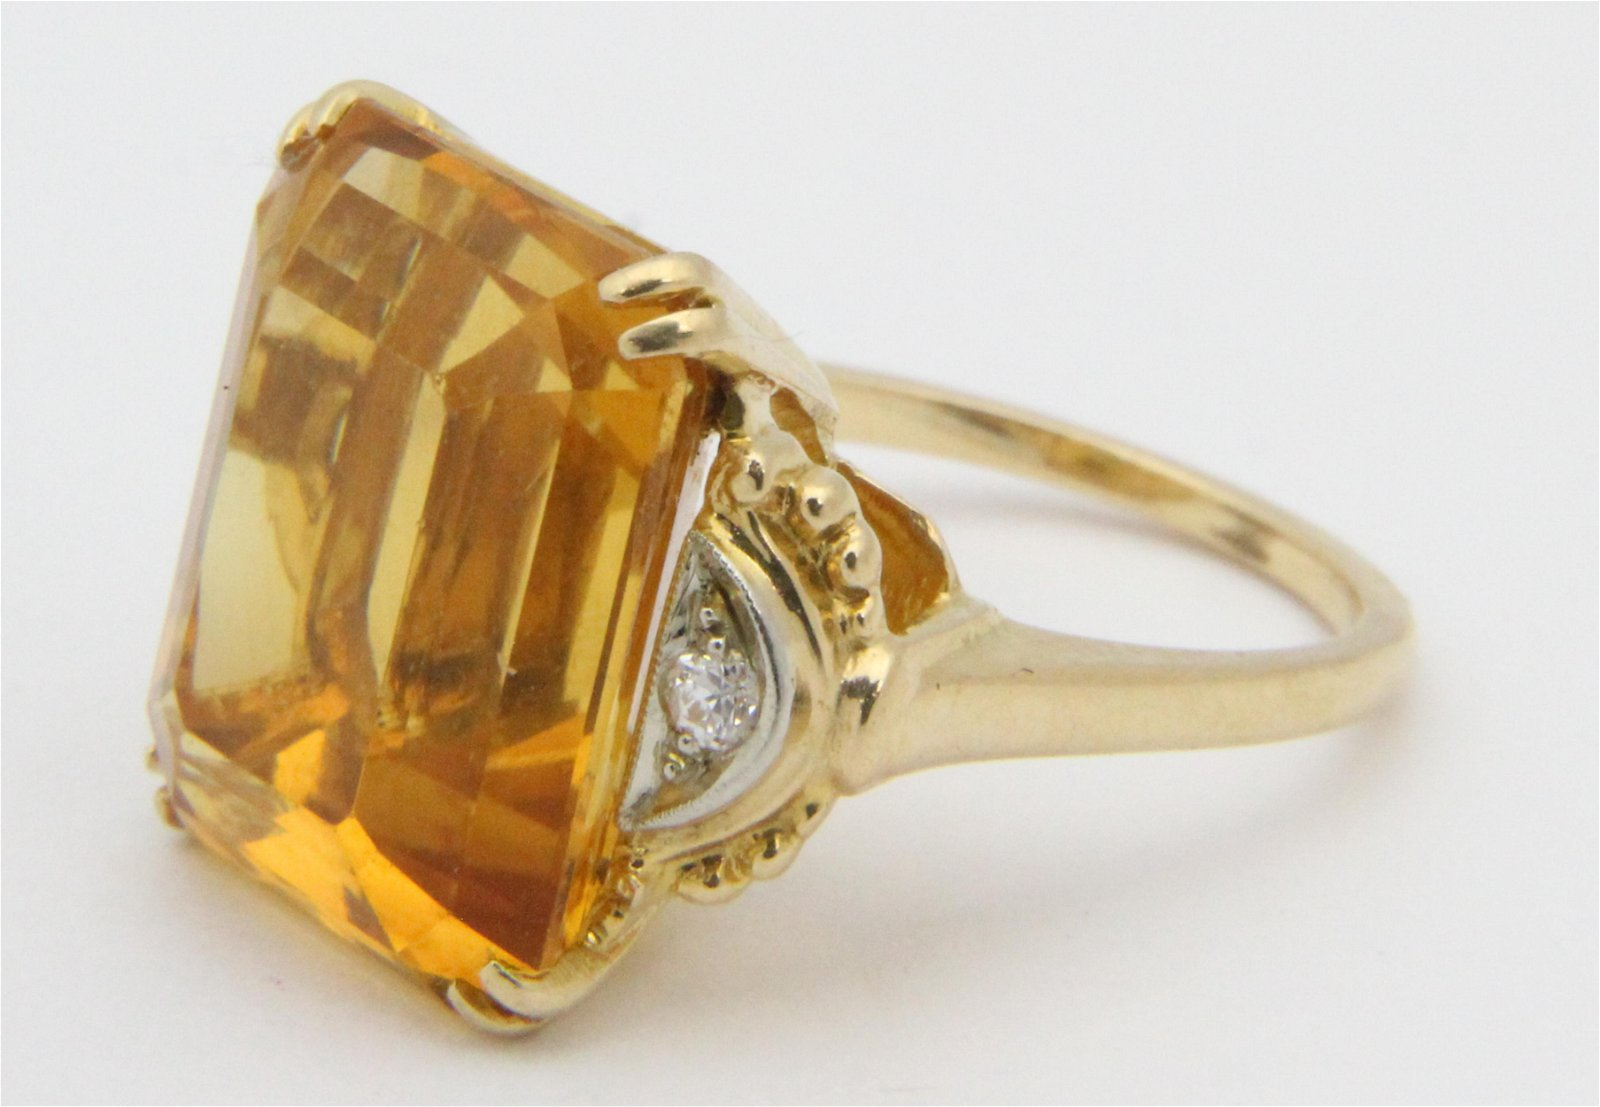 15 ct Citrine, diamond, & yellow gold cocktail ring